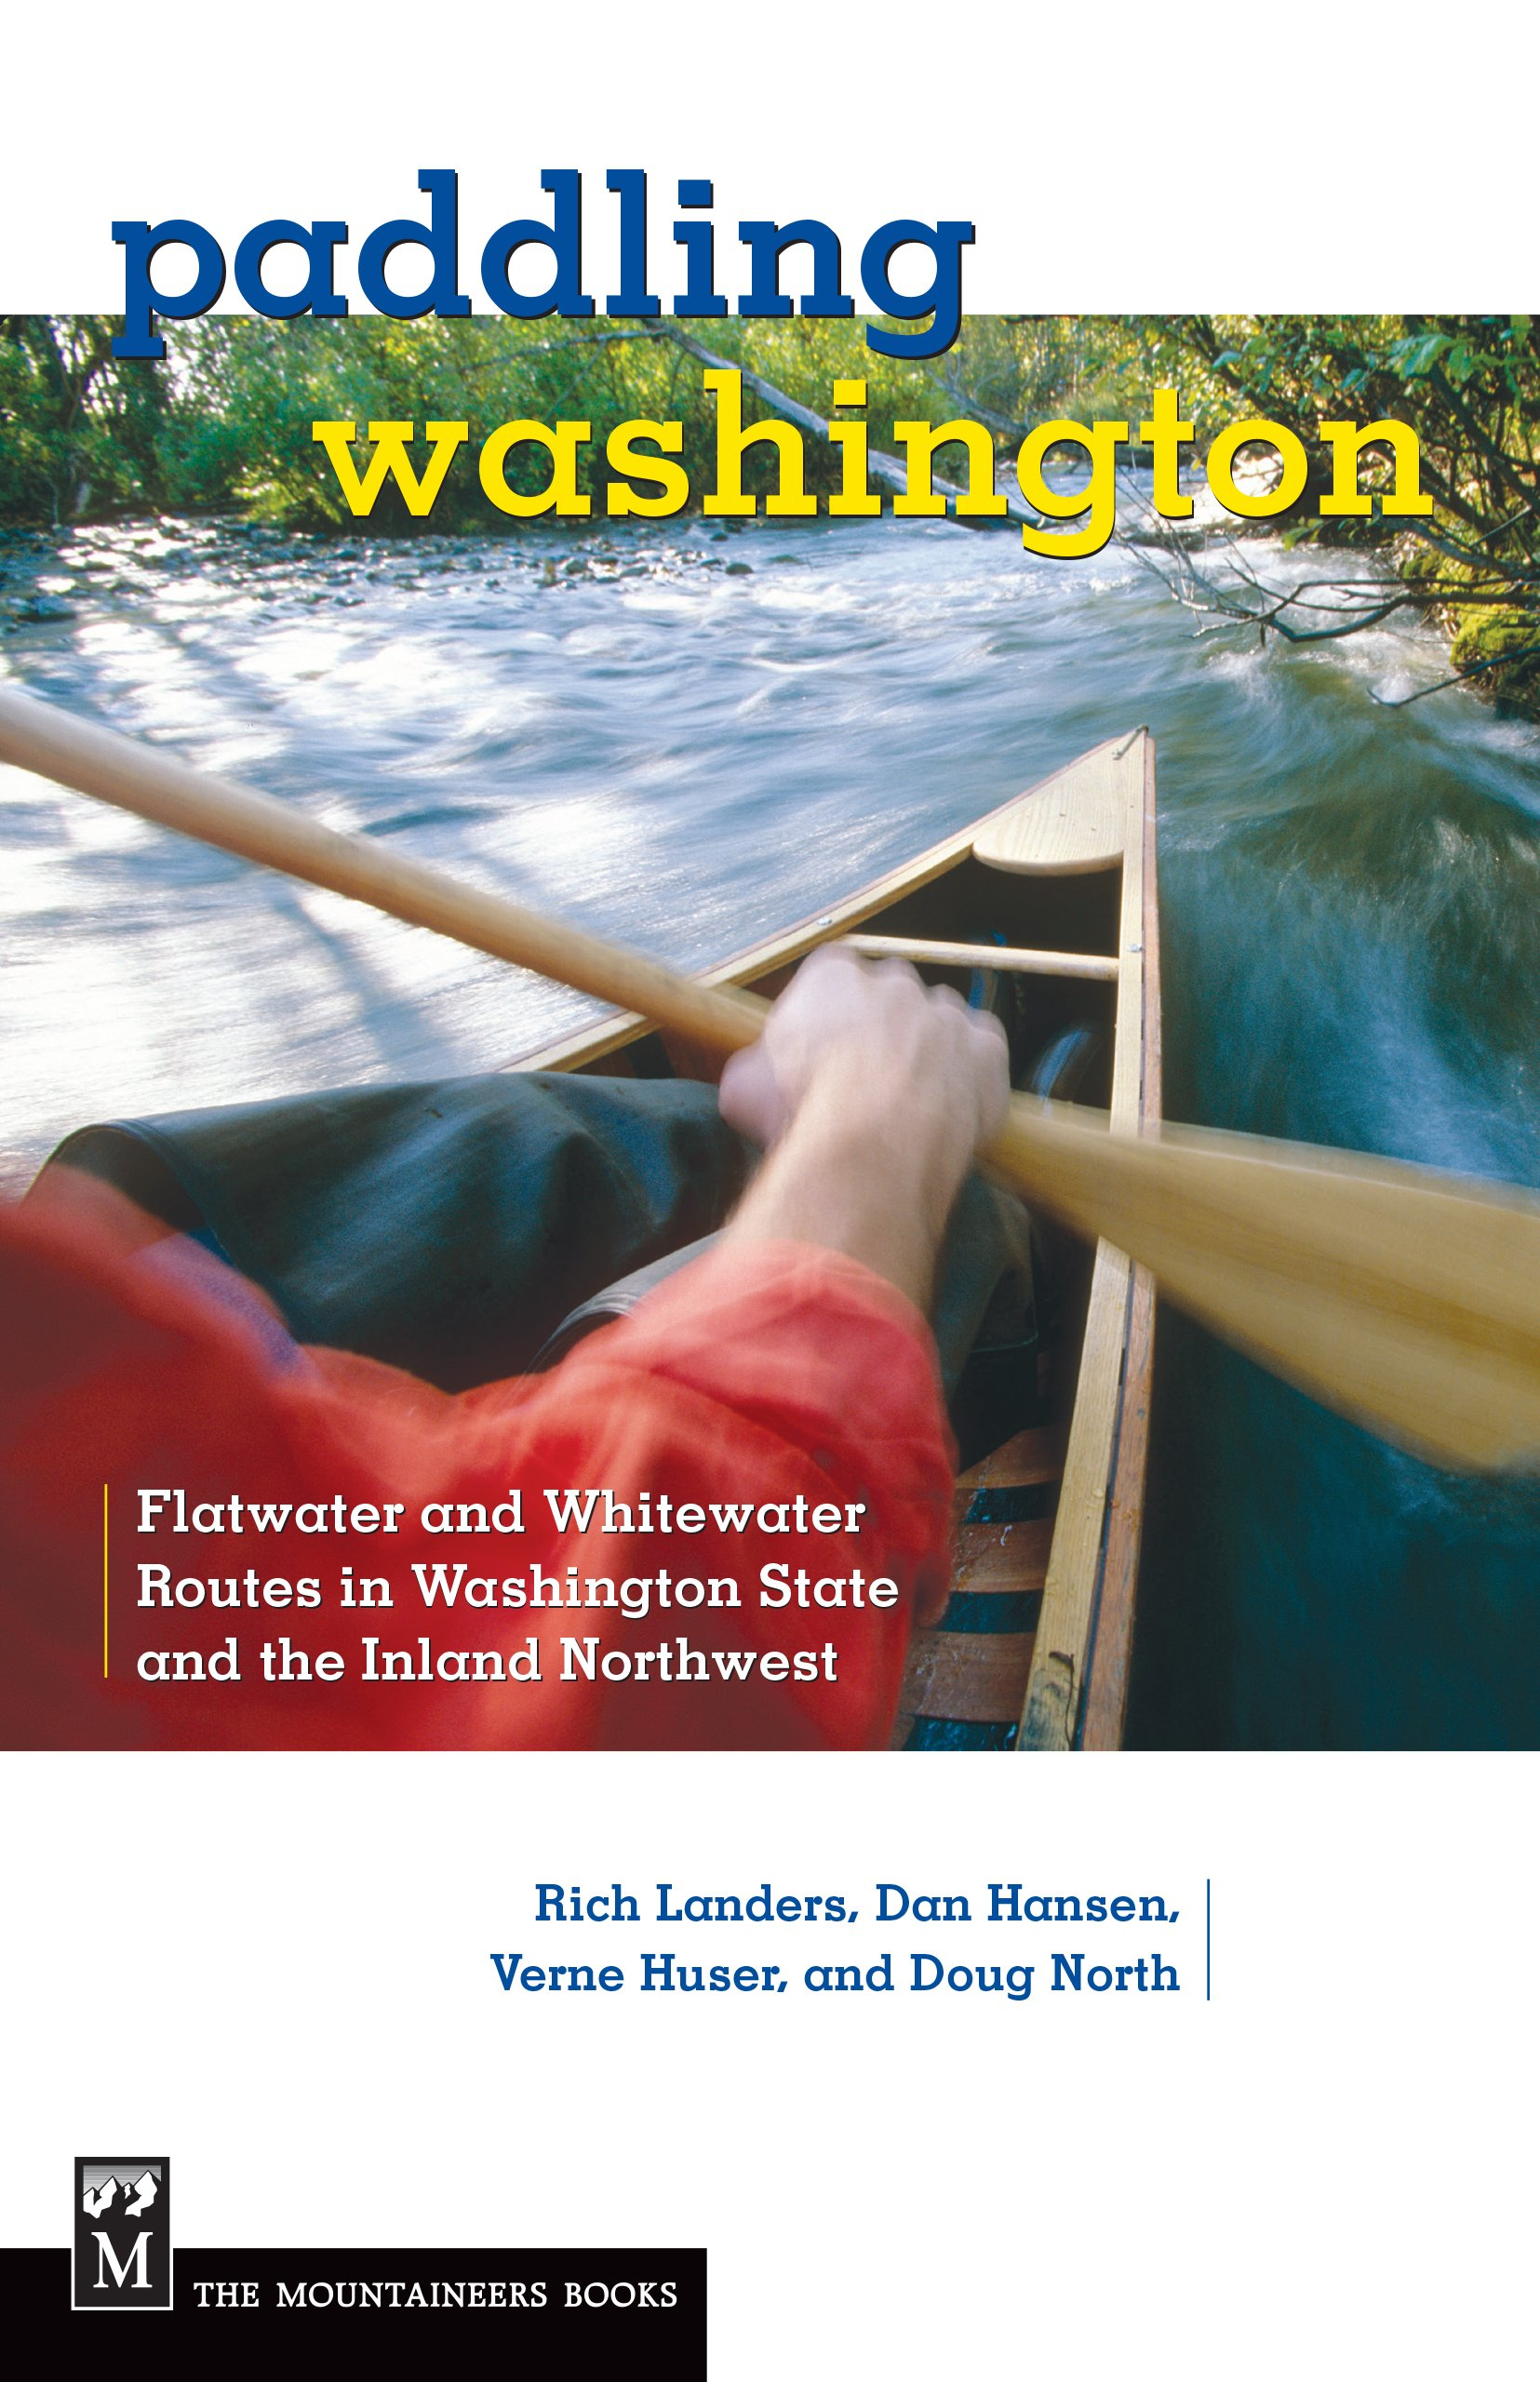 Paddling Washington: 100 Flatwater and Whitewater Routes in Washington State and the Inland Northwest pdf epub